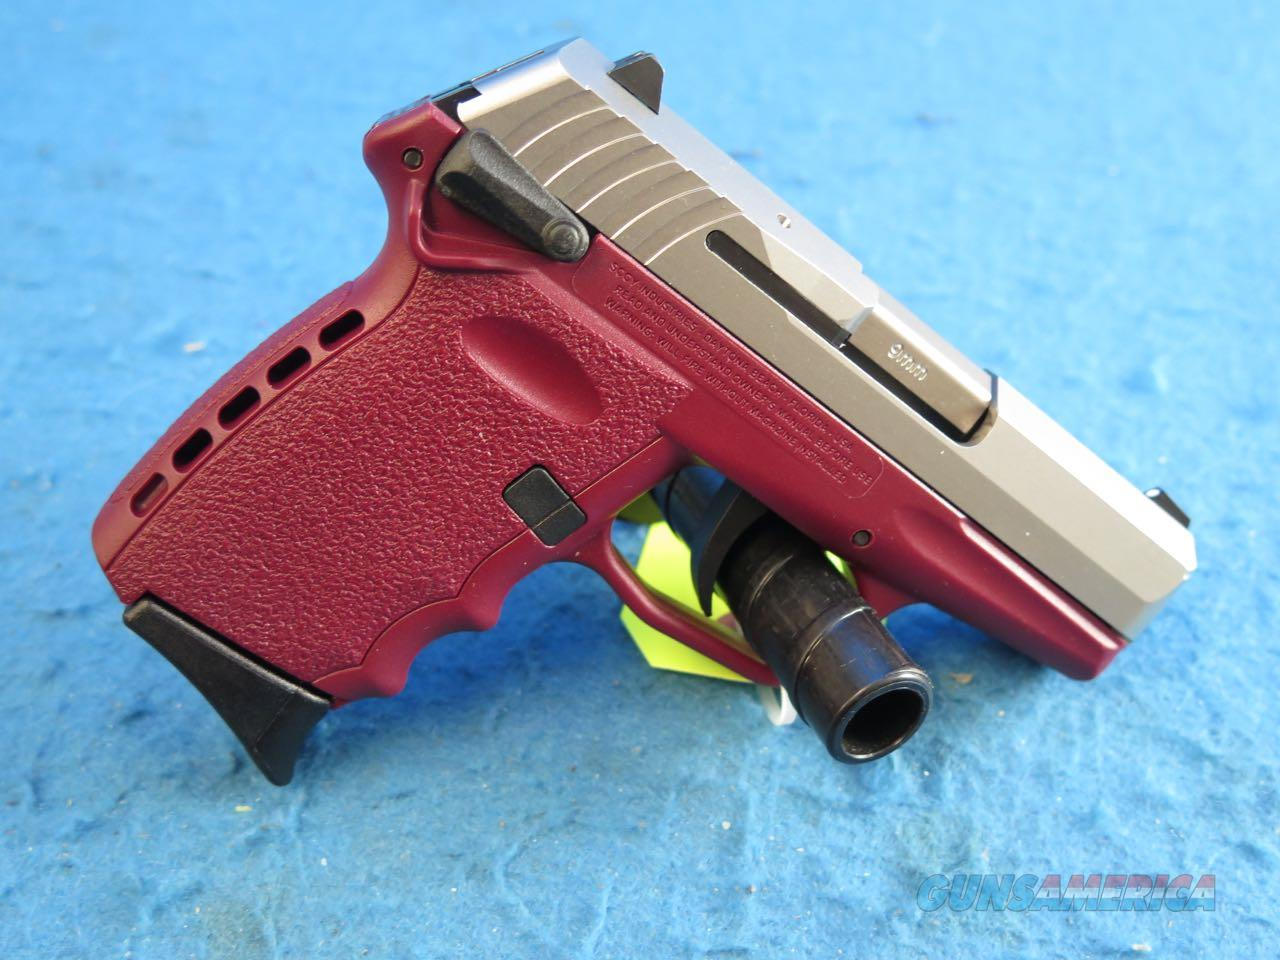 SCCY Model CPX-1 TTCR 9mm Pistol Crimson/Stainless **New**  Guns > Pistols > SCCY Pistols > CPX1